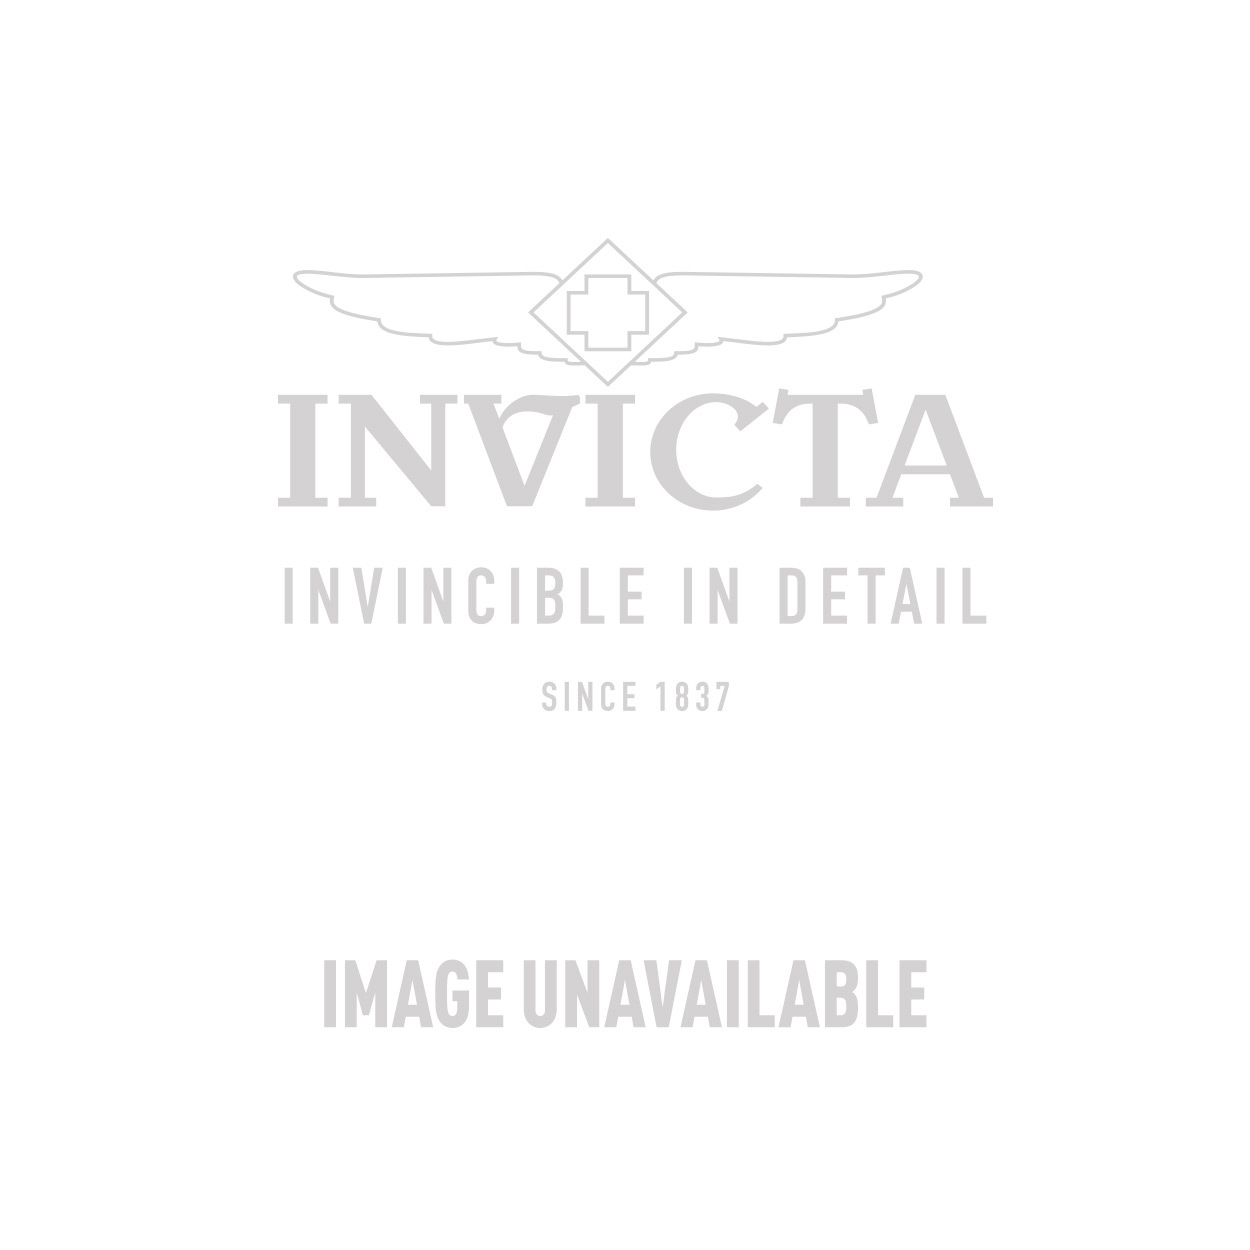 Invicta Corduba Swiss Movement Quartz Watch - Stainless Steel case with Black tone Polyurethane band - Model 80204